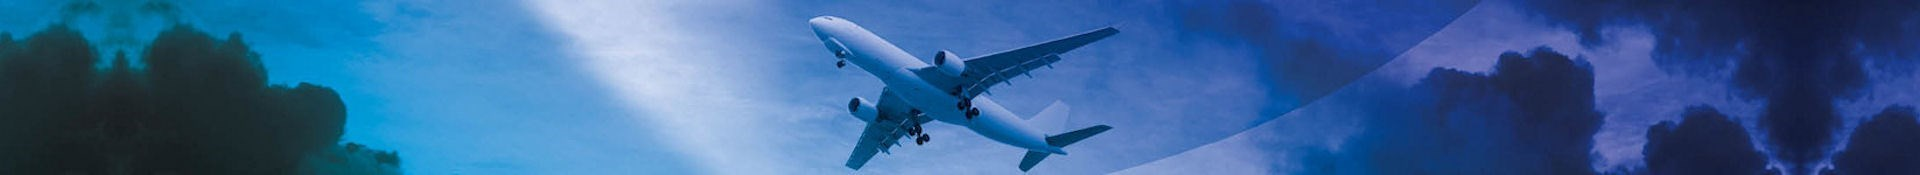 Civil Aviation Authority Banner Image